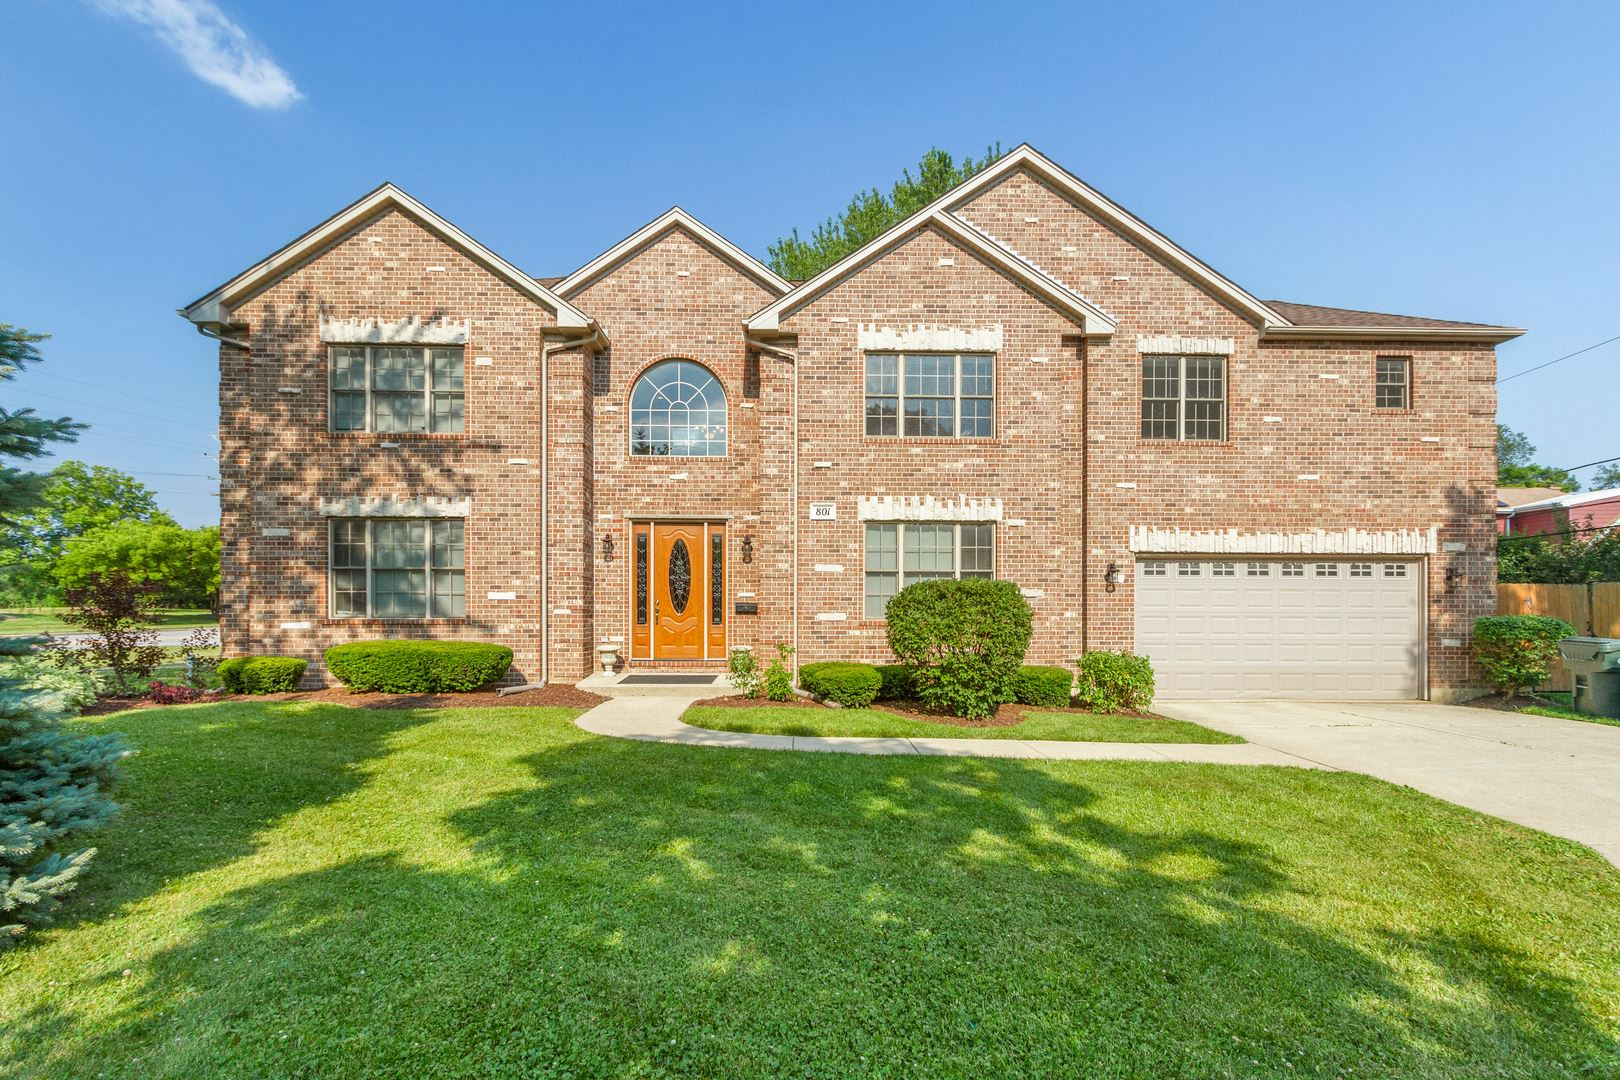 801 Midway Road, Northbrook, IL 60062 - #: 10778442